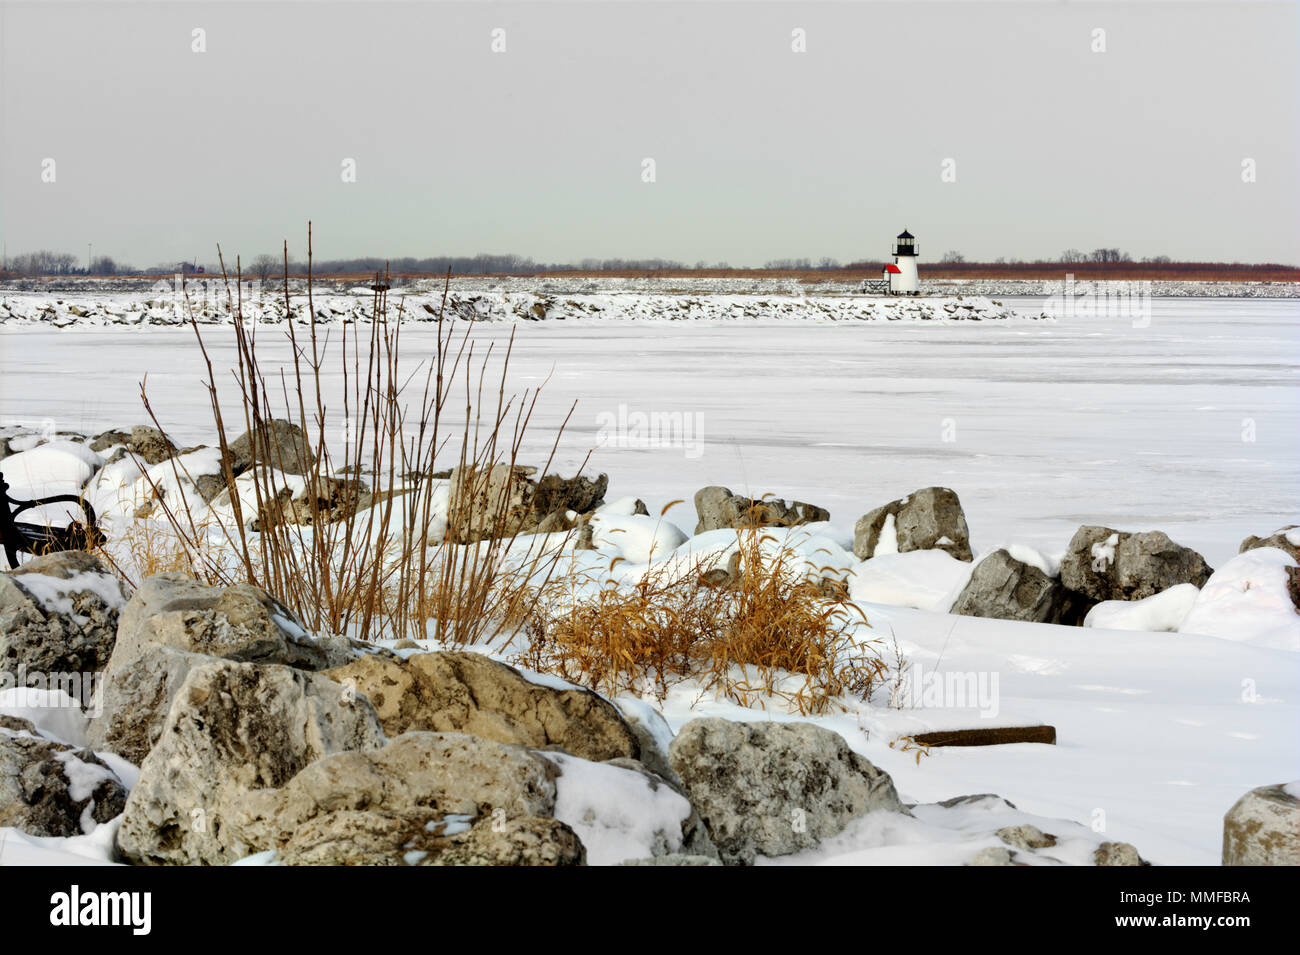 A small lighthouse at the entrance to the port of Toledo Ohio in winter. Lake Erie is frozen and covered with snow in this winter scene. Stock Photo